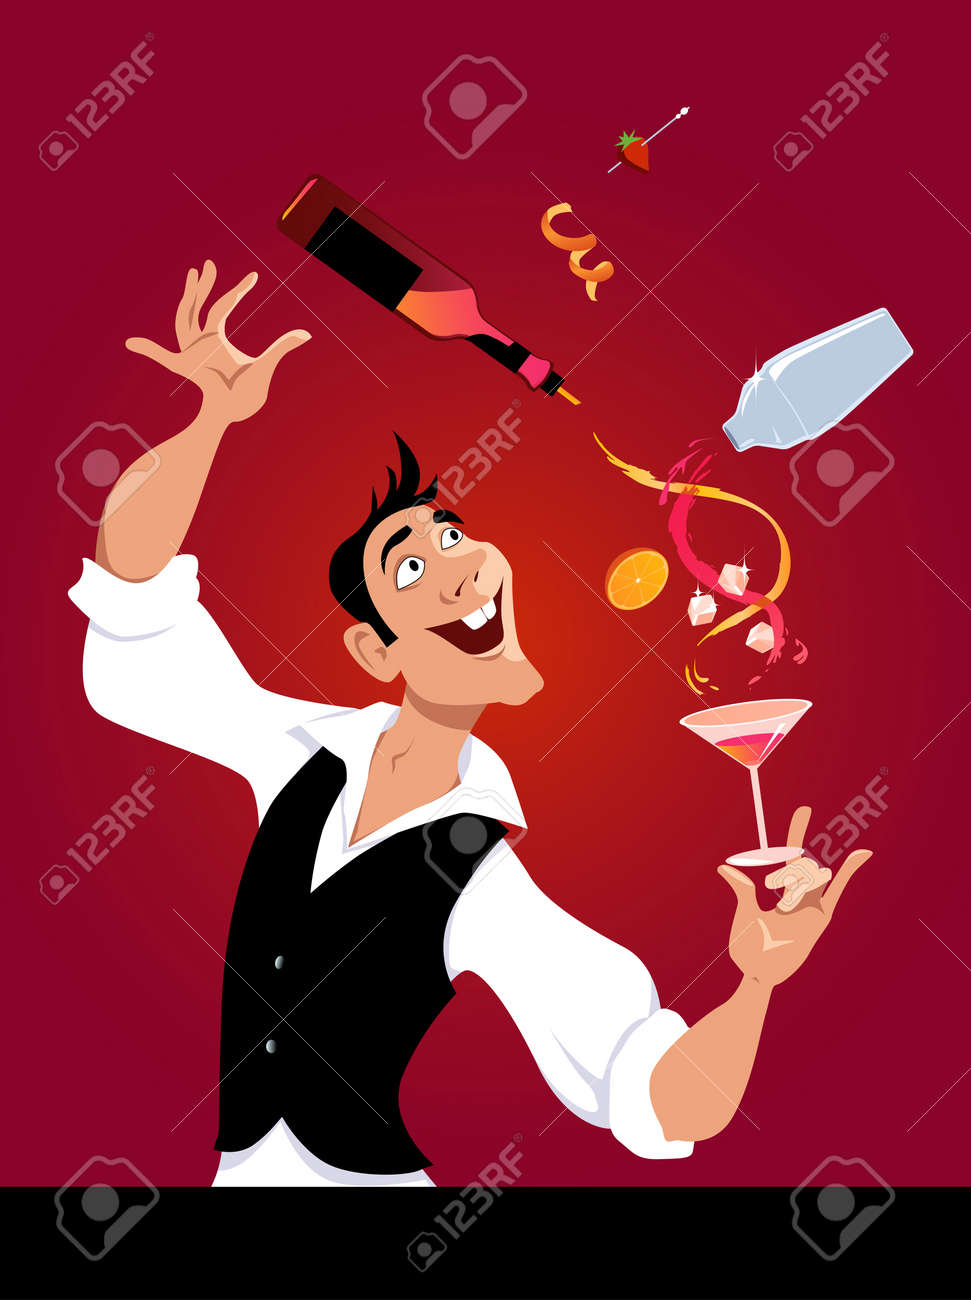 Mixologist demonstrates flair bartending making a cocktail, EPS 8 vector illustration, no transparencies - 72709696